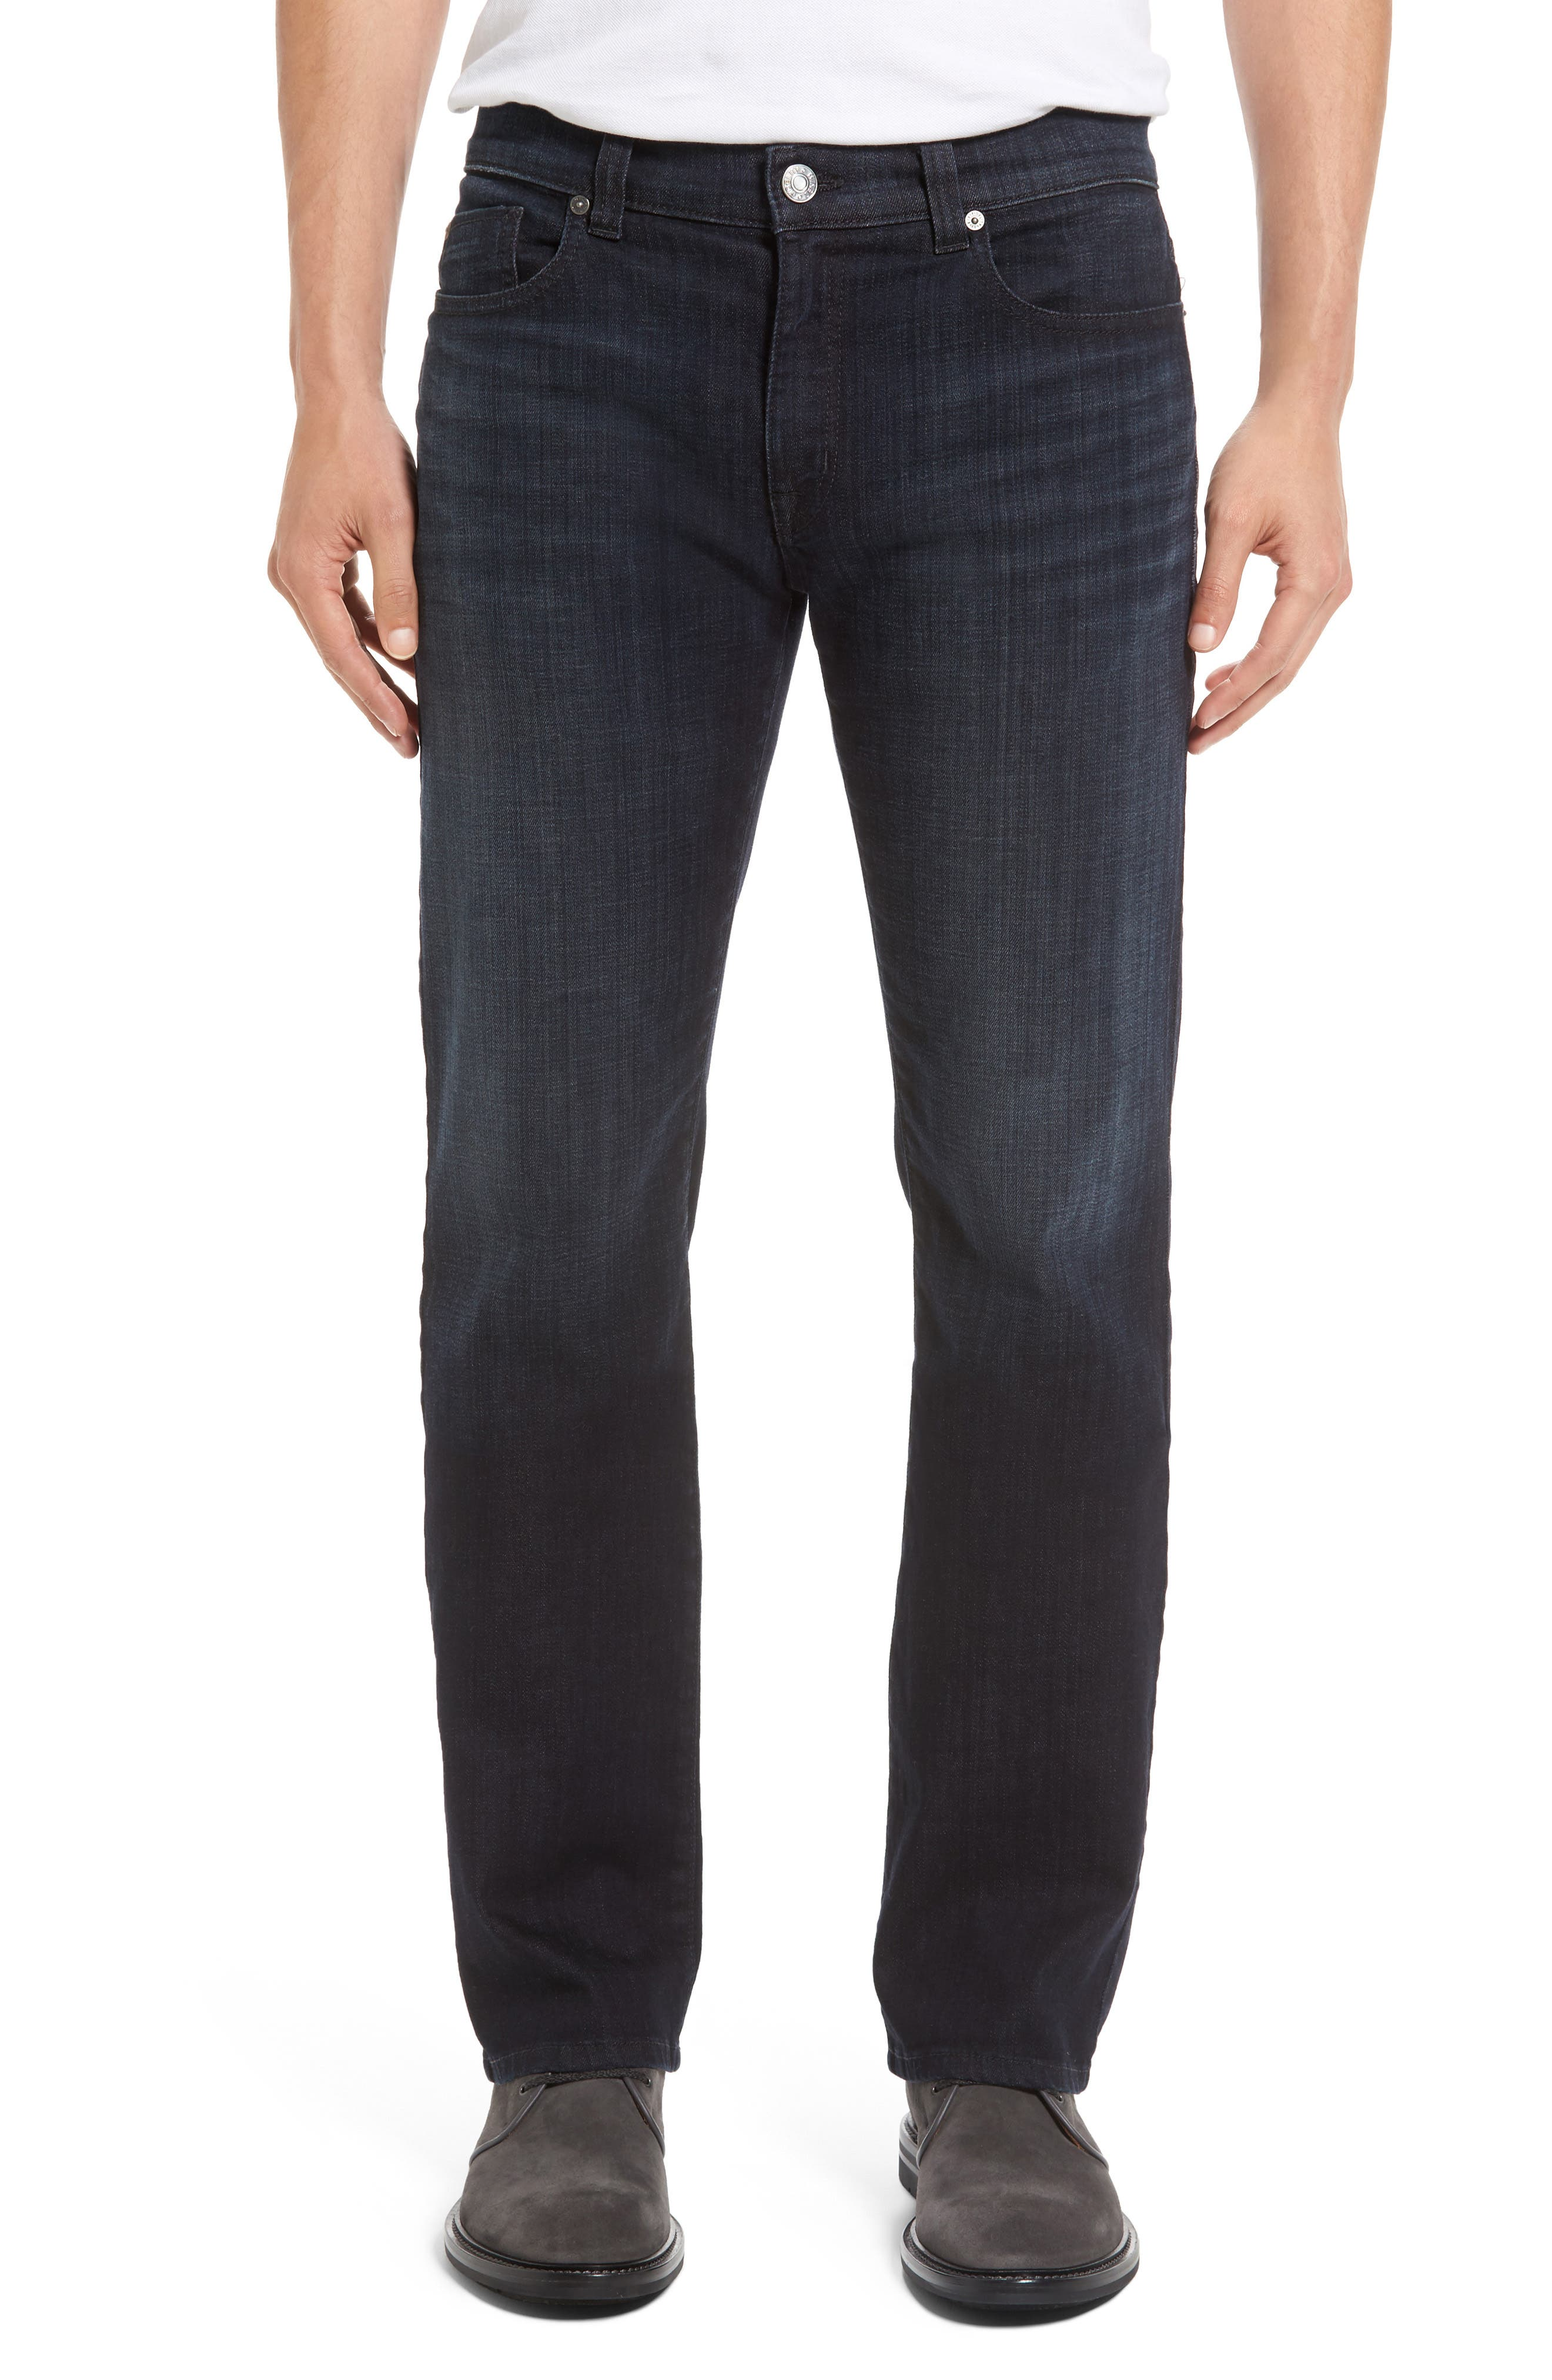 5011 Relaxed Fit Jeans,                             Main thumbnail 1, color,